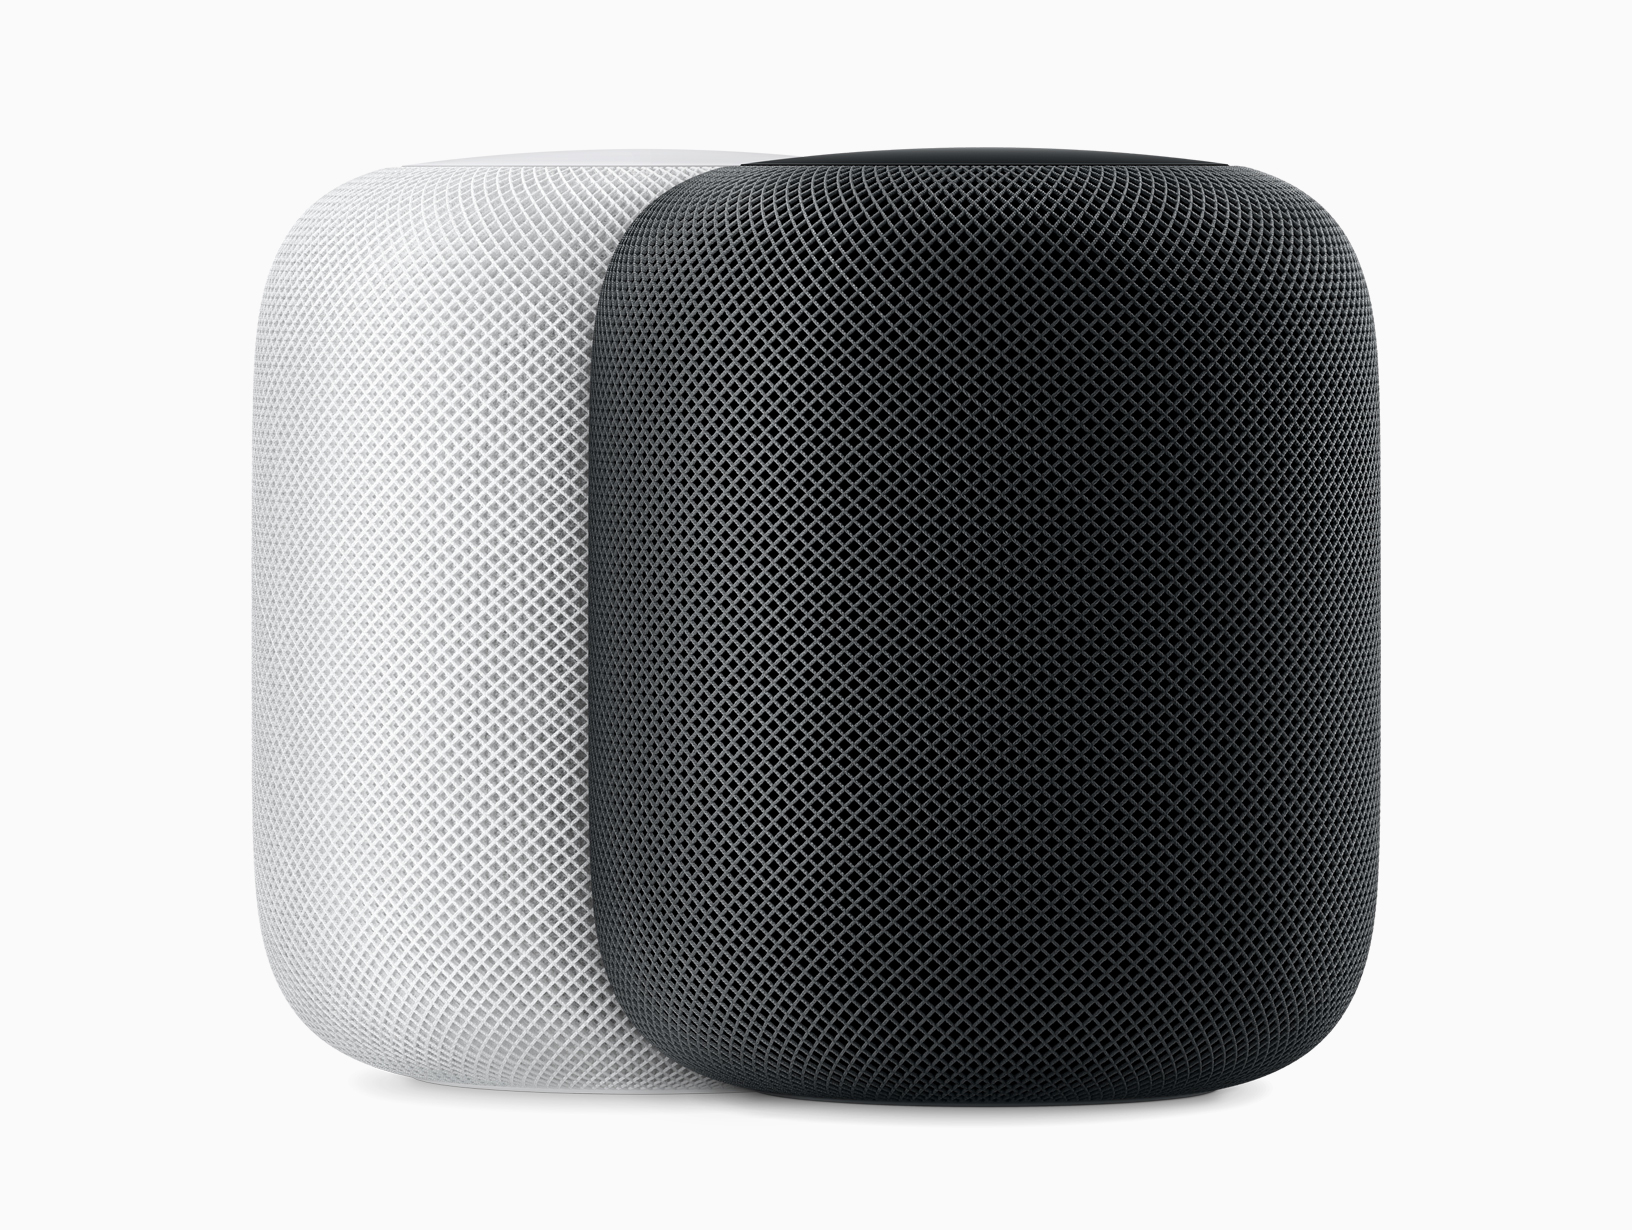 AirPlay 2 and Home Pod stereo pairing arrive with iOS 11.4		 		 	Brian Heater         @	       	7 hours